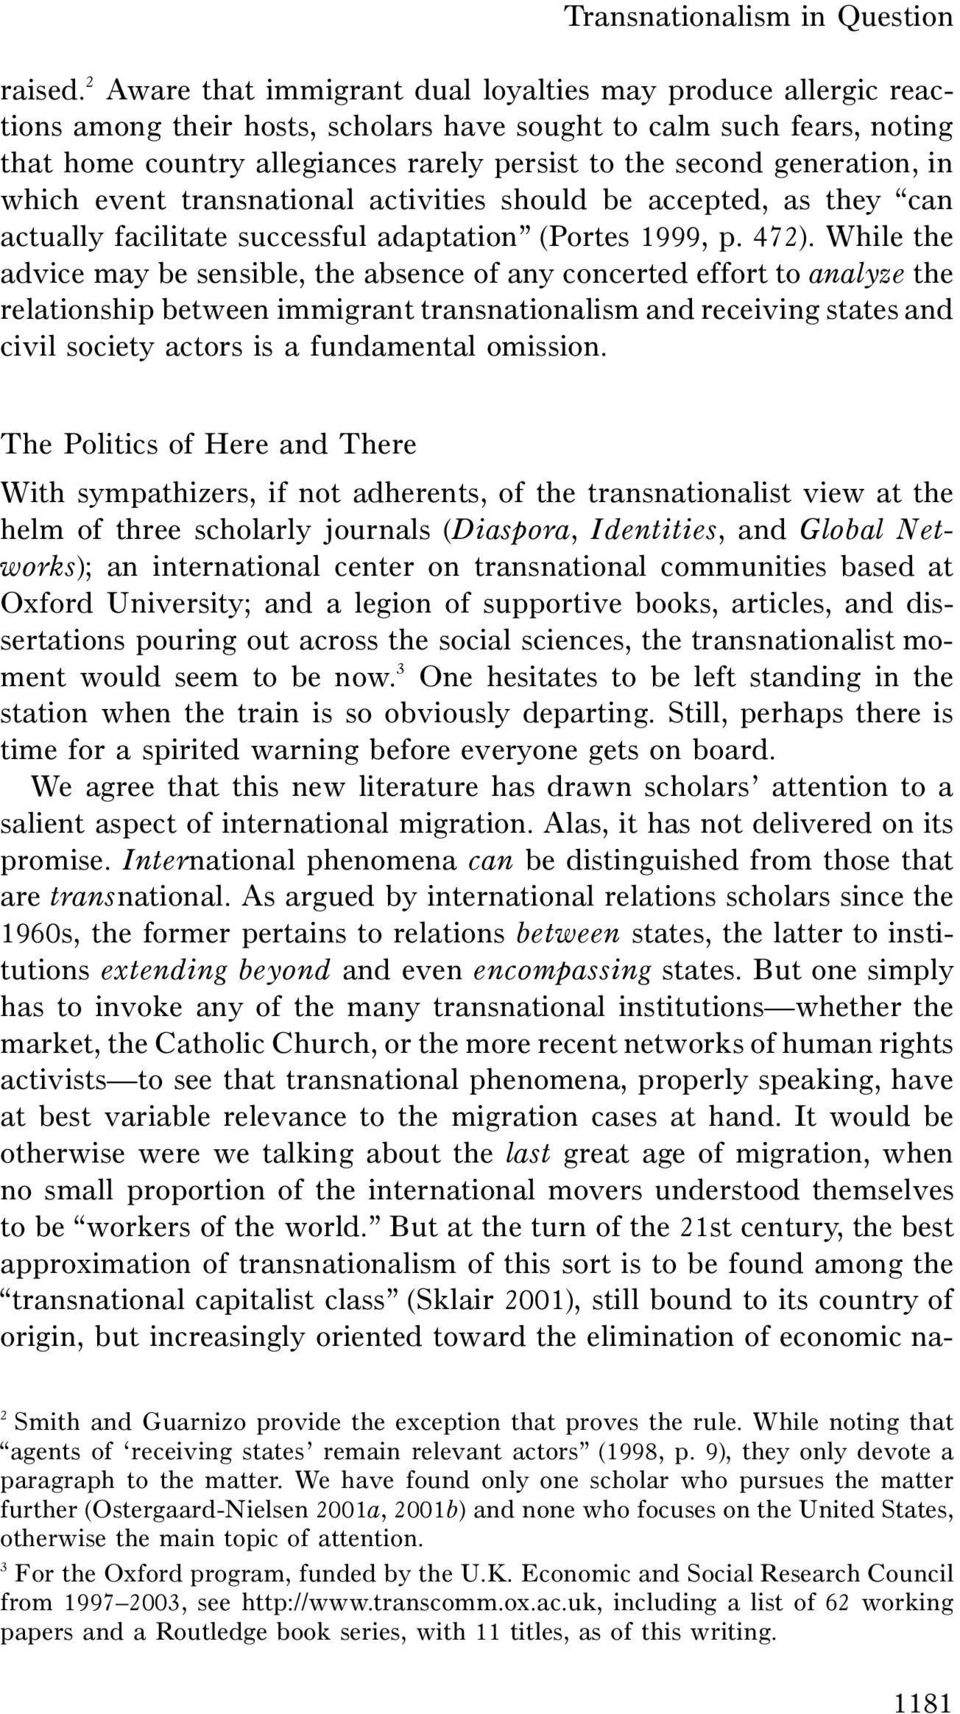 generation, in which event transnational activities should be accepted, as they can actually facilitate successful adaptation (Portes 1999, p. 472).